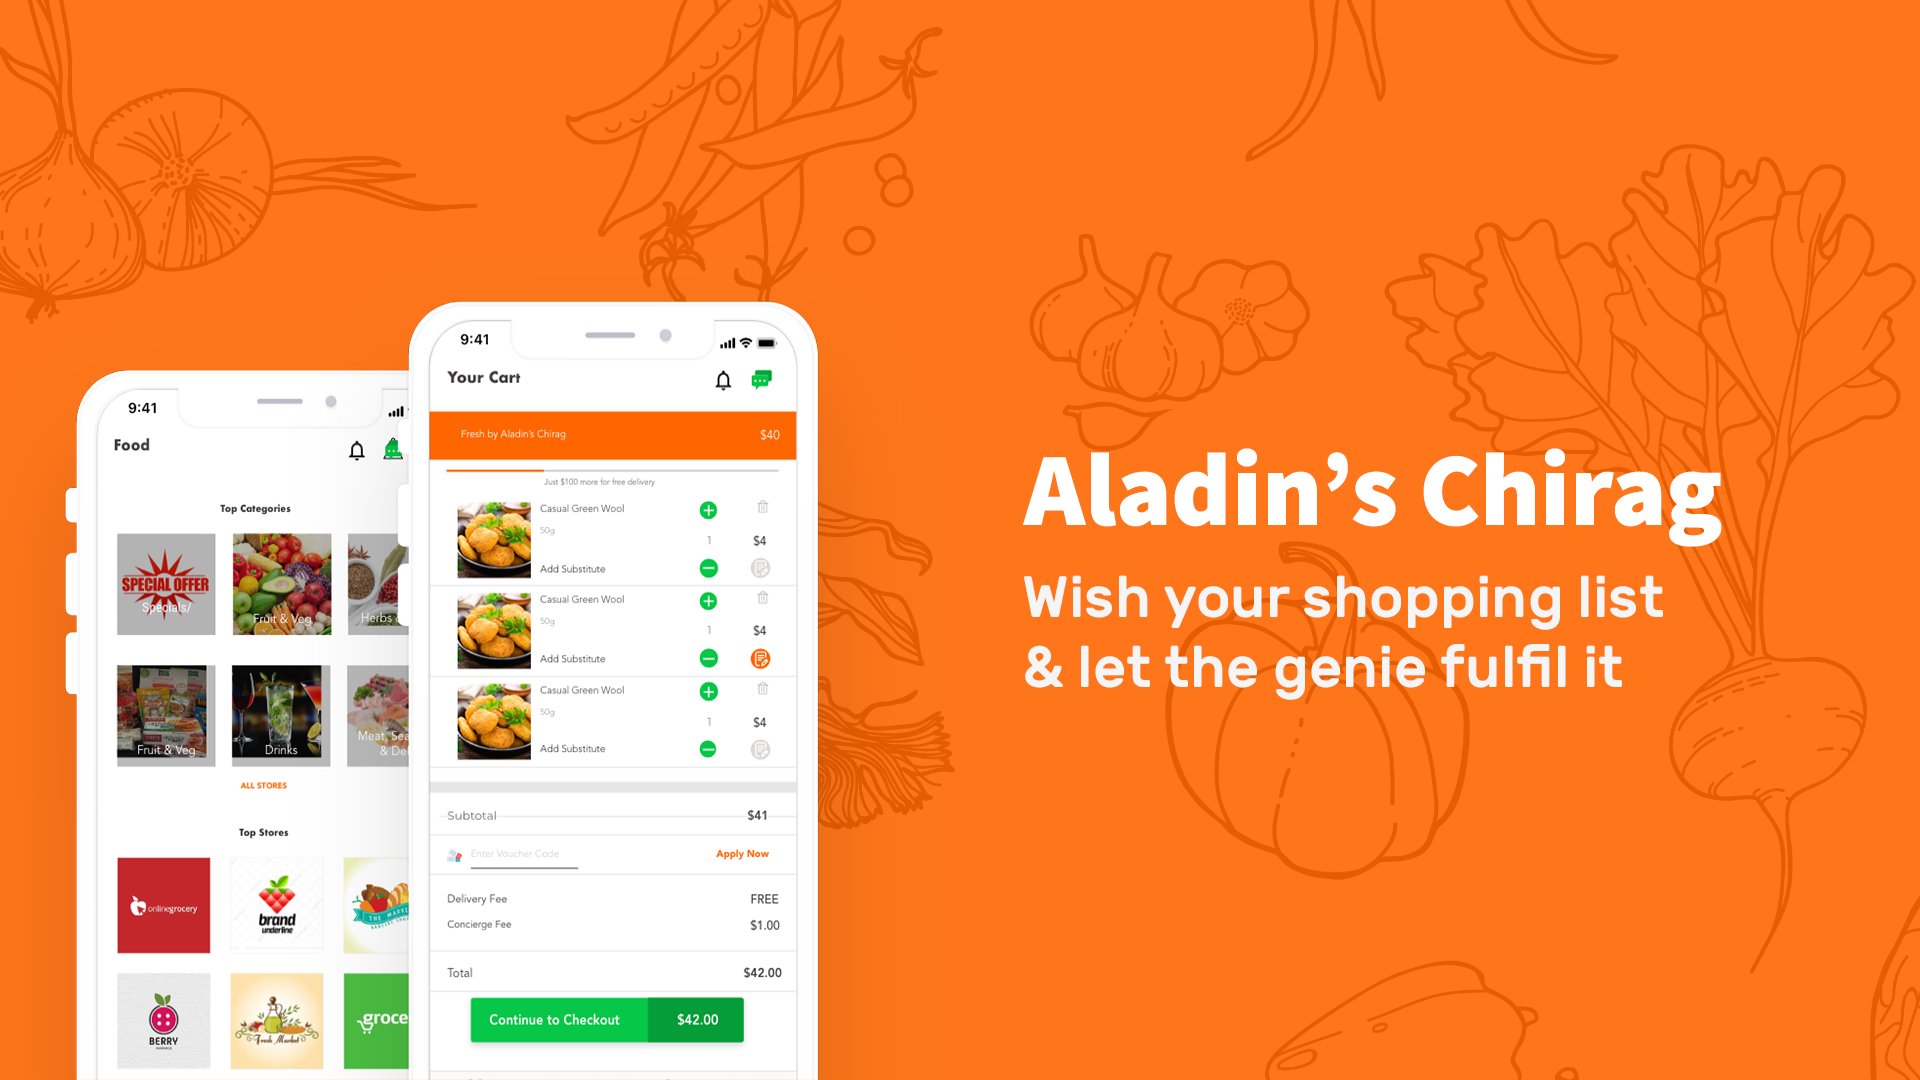 online grocery shopping aladin's chirag